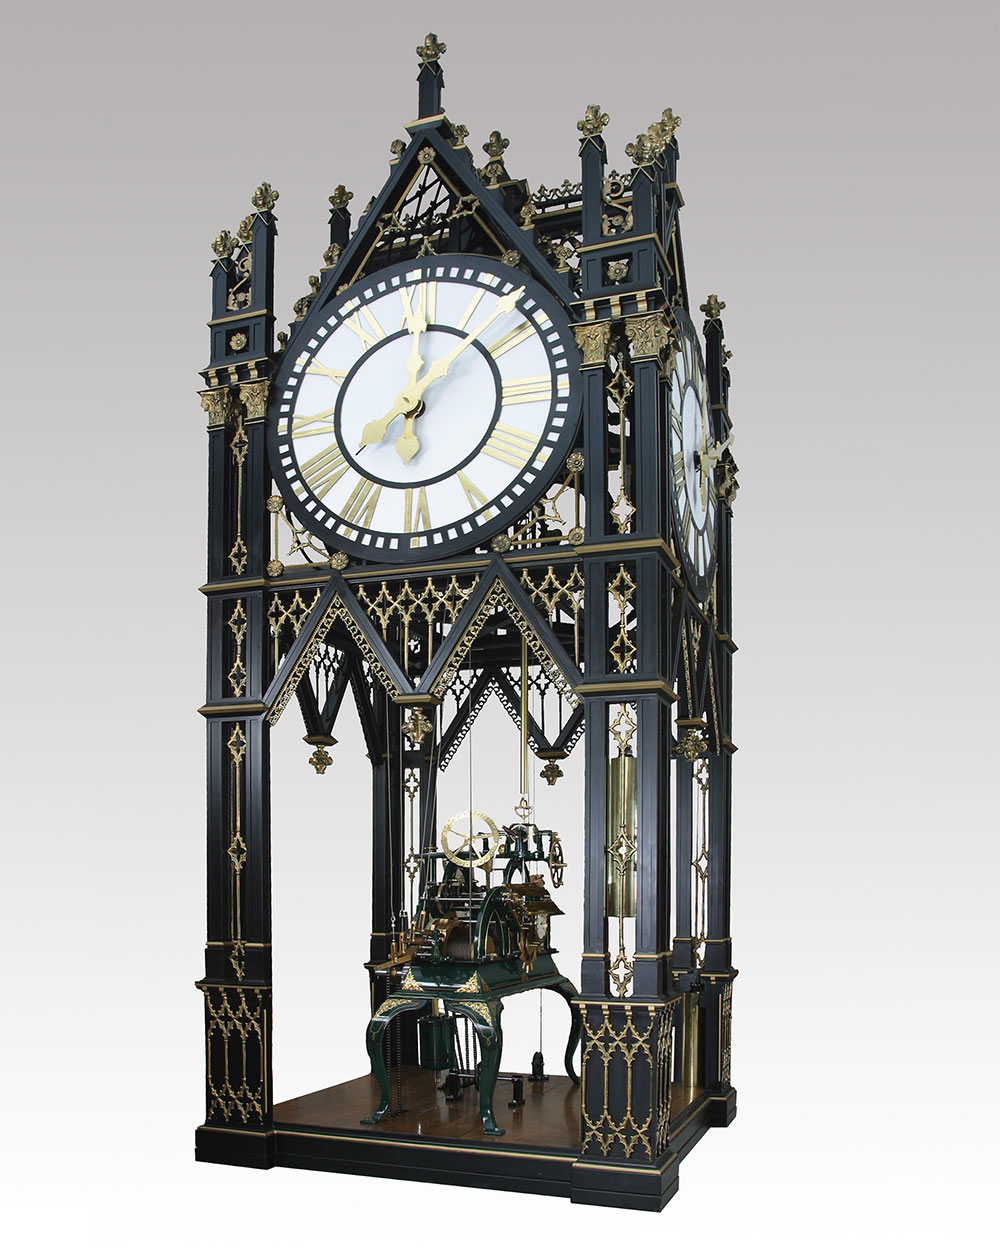 Jbgalleries Gothic Tower Images Artist Blacksmith Revival Clock